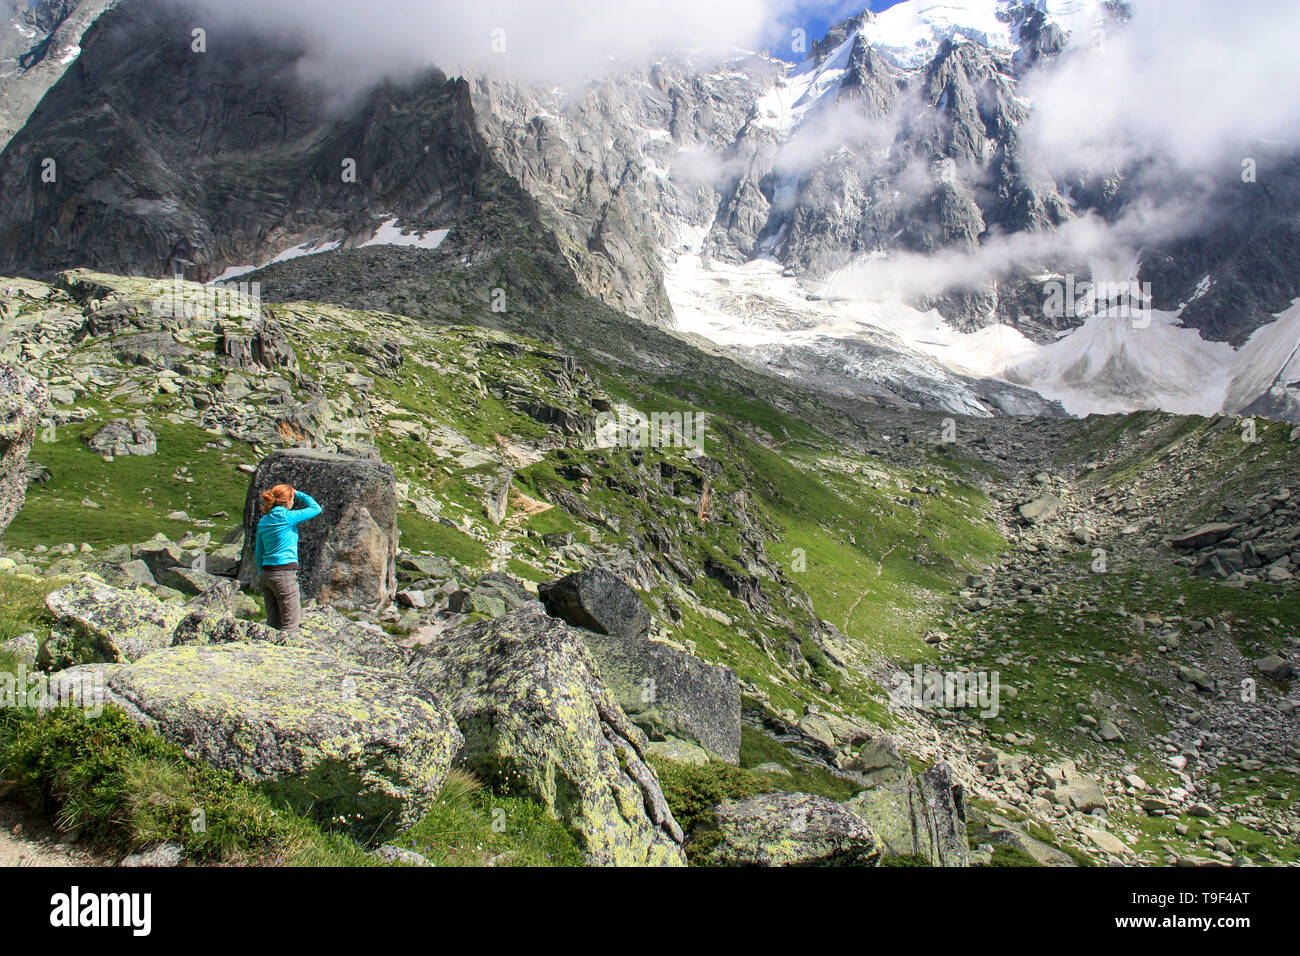 Redhead woman standing in between boulders and rocks exploring the Mont Blanc massif and looking towards the peak of the Aiguille du Midi in France Stock Photo